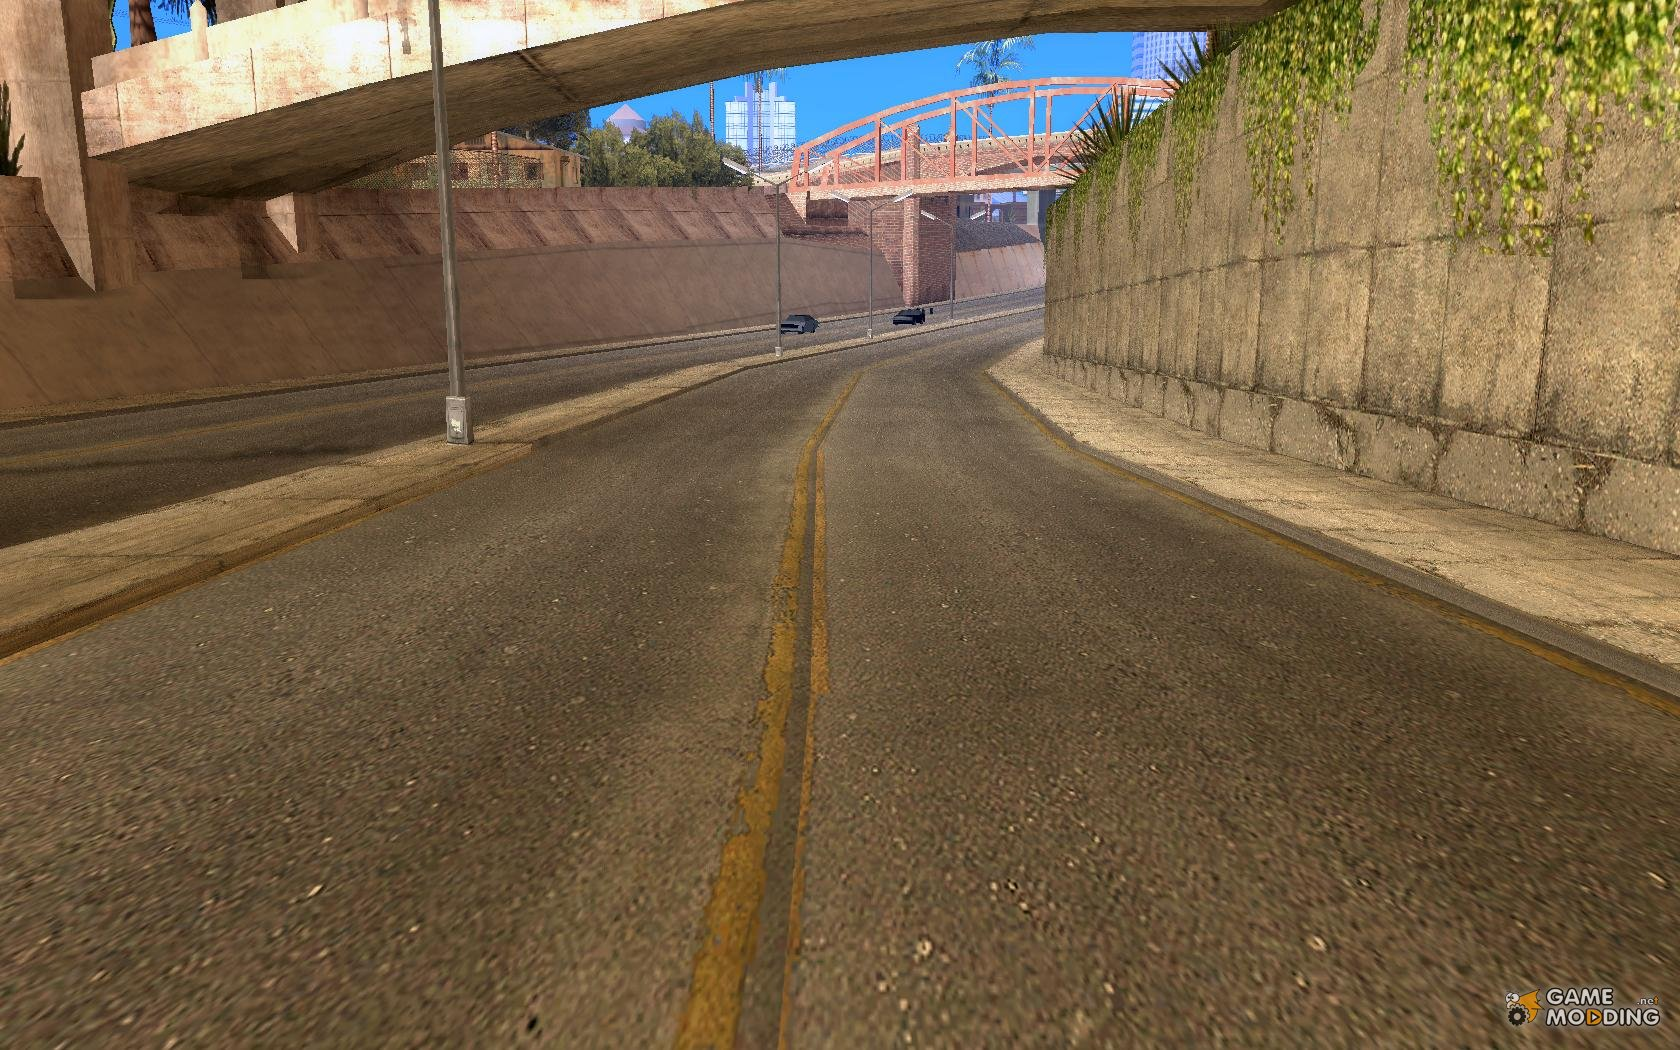 san andreas map size with 26898 Hd Dorogi V20 Final on File HIGH RES GTA 3 GHOST TOWN as well 26898 Hd Dorogi V20 Final also File V tbd 1920x1080 besides File Taxi GTA4 Declasse Rear as well Watch.